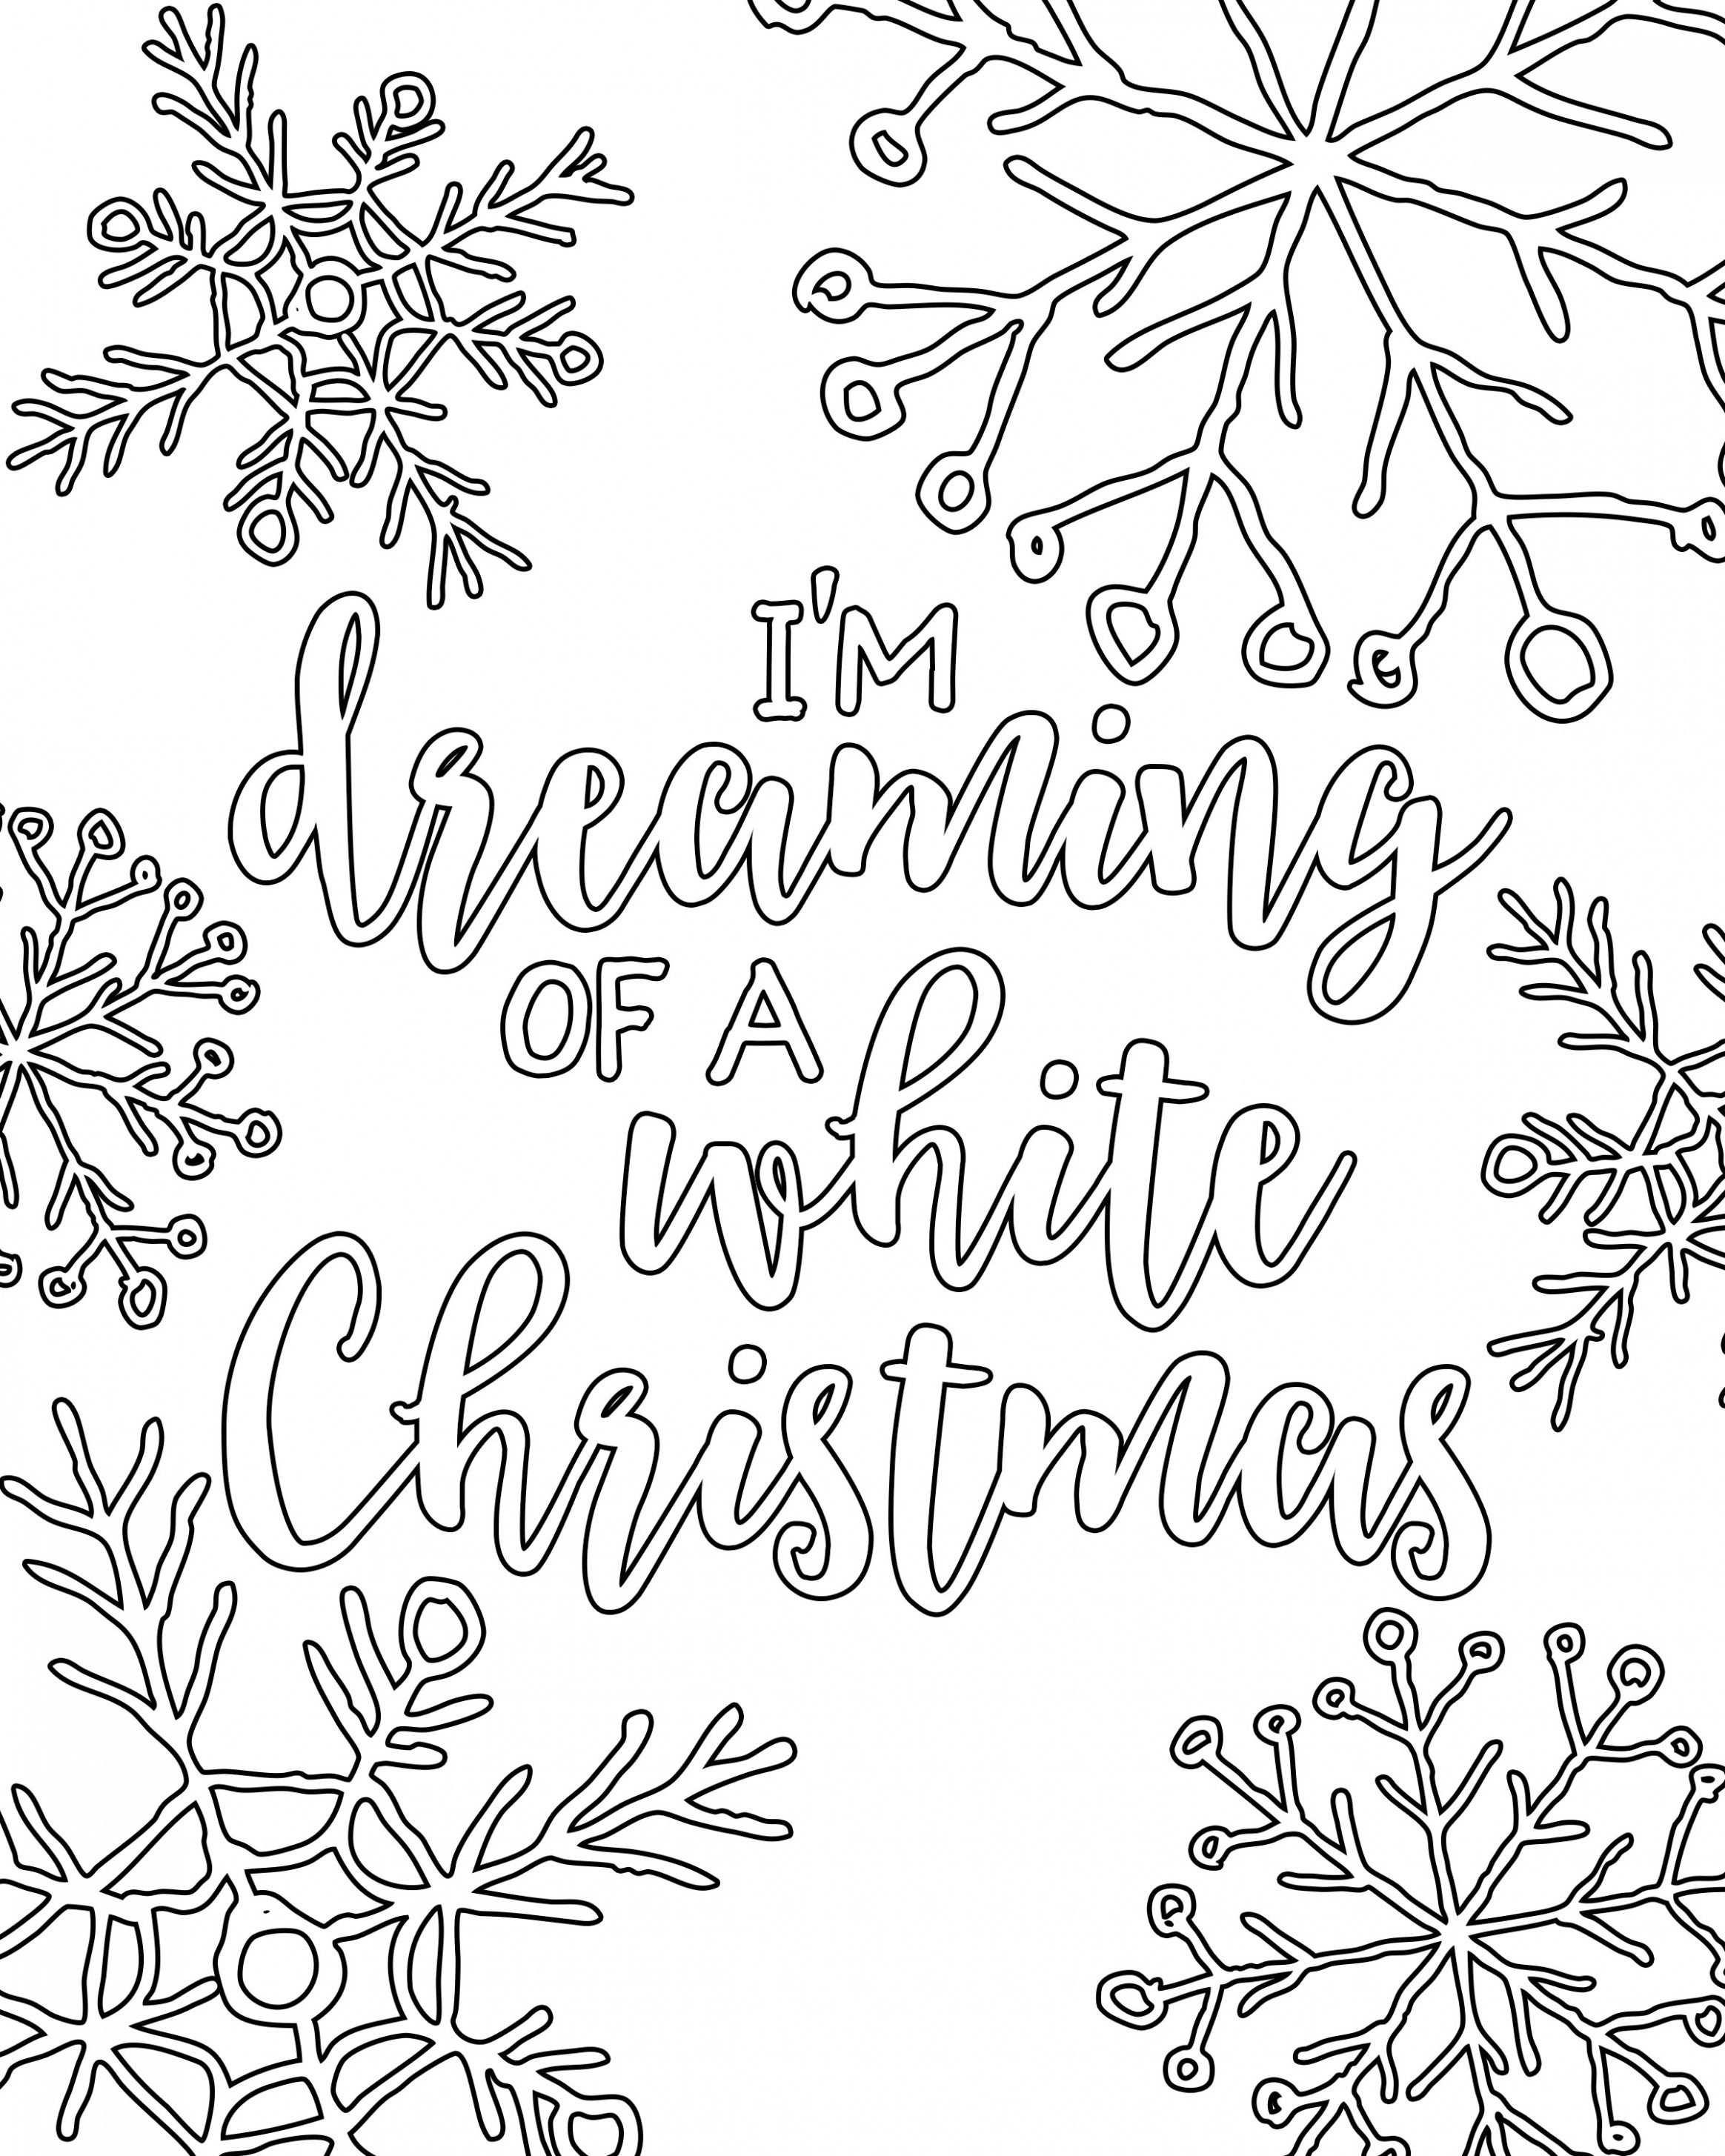 Free Printable White Christmas Adult Coloring Pages | Coloring Pages – Christmas Adults Coloring Pages